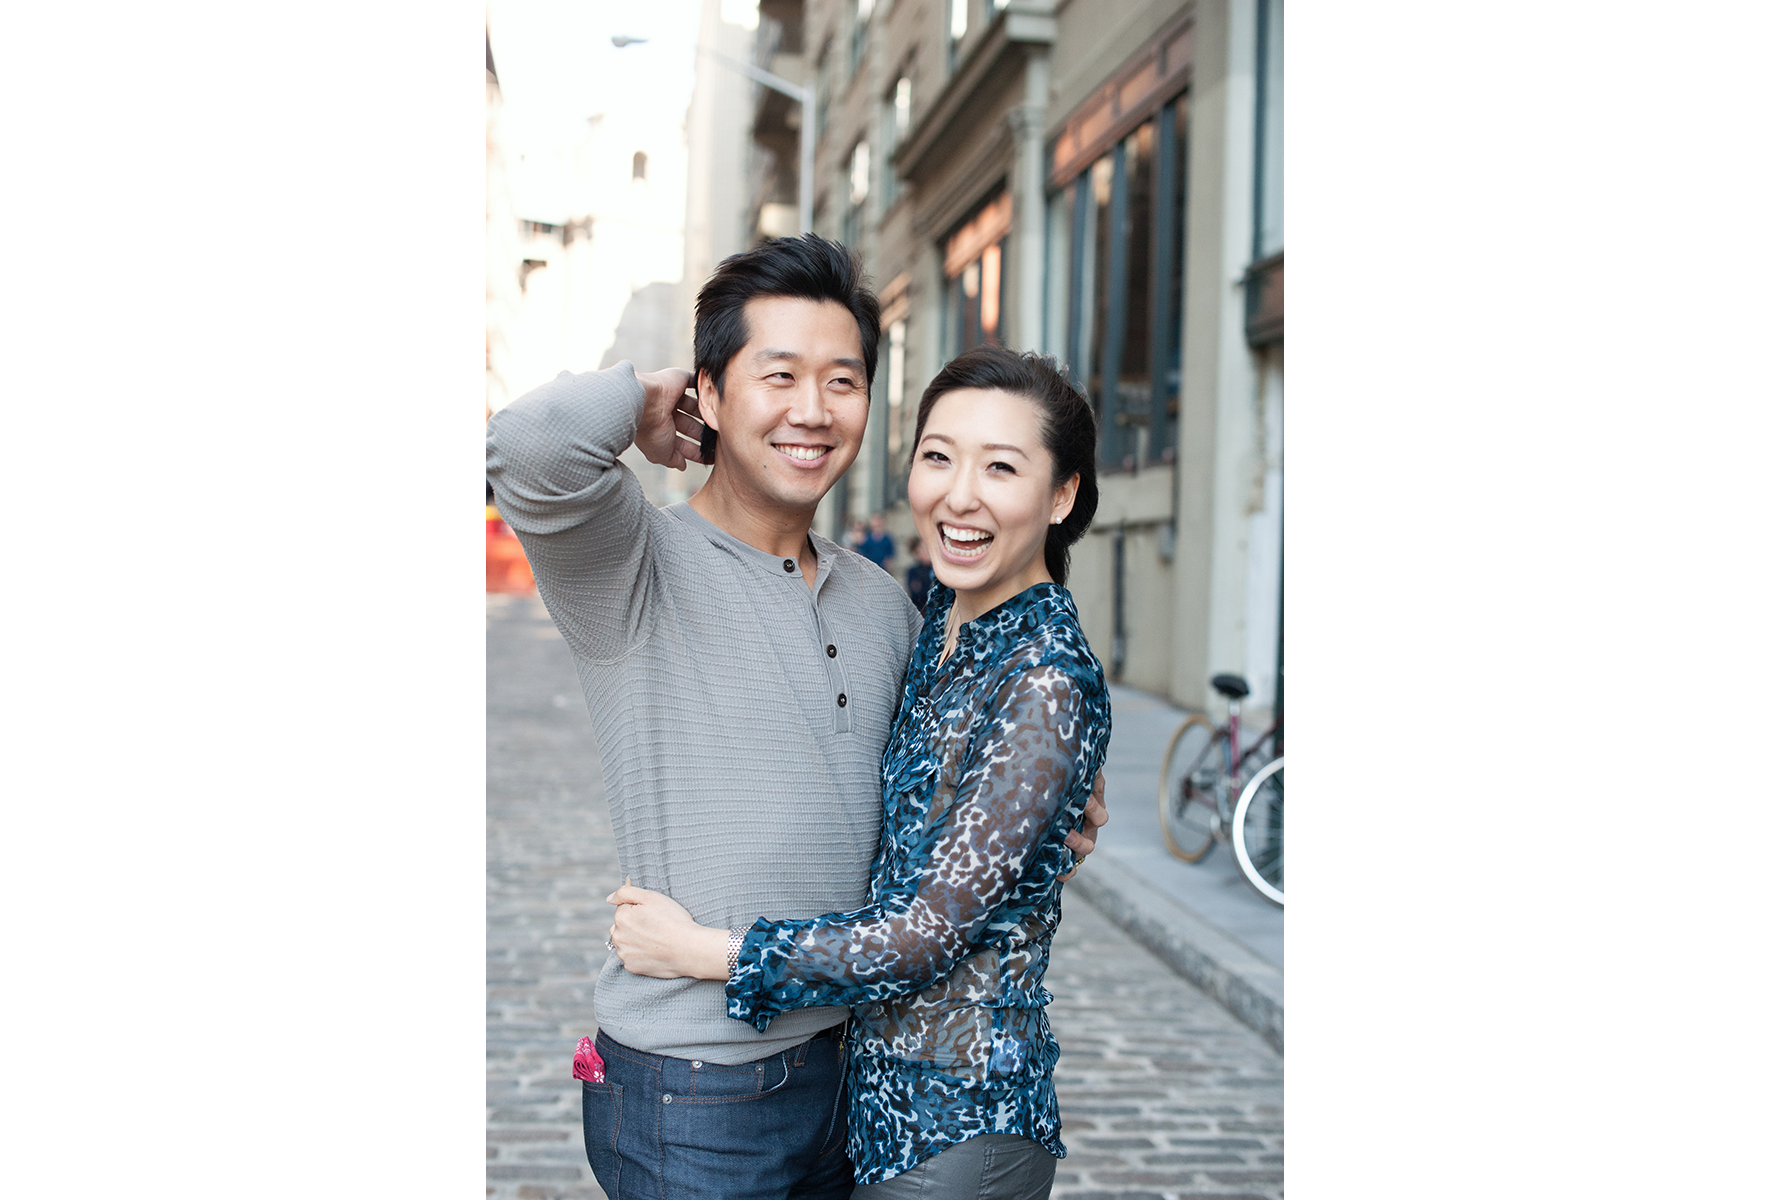 raquelreis_wedding_photography_engagements_012.png